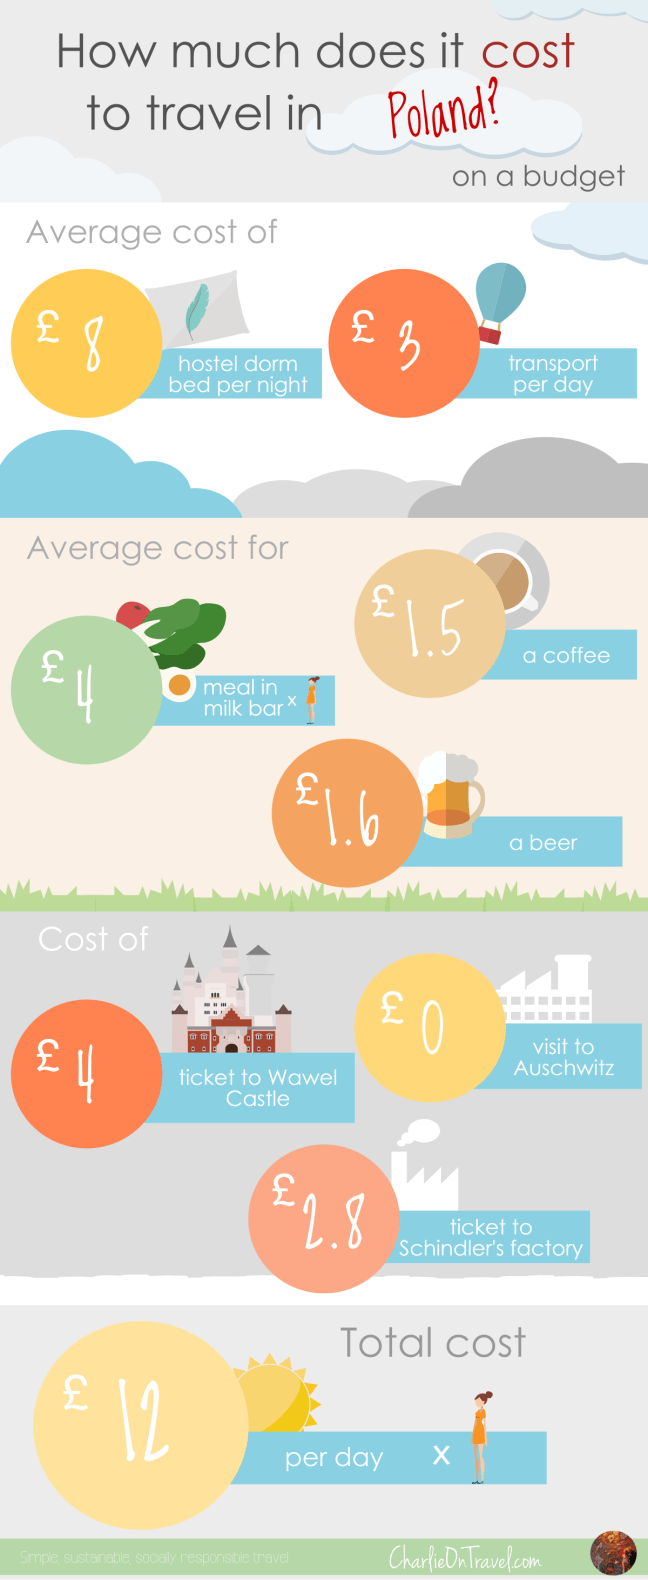 How Much Does it Cost to Travel Poland on a Budget?